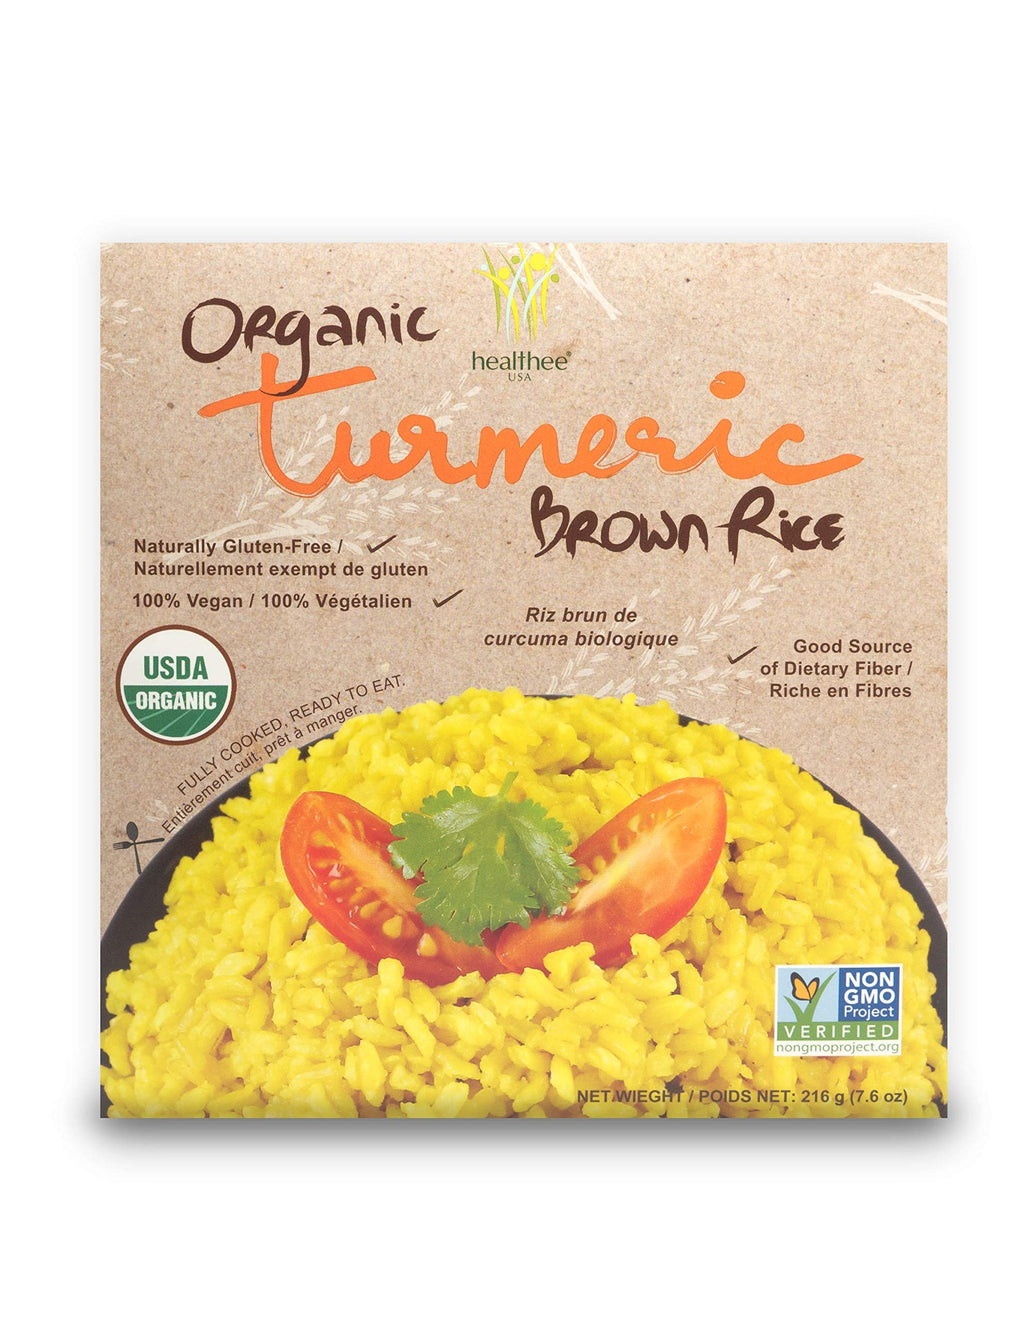 Healthee Organic Brown Rice, Gluten Free, Fully Cooked and Ready-to-Eat, USDA Certified Organic, GMO-Free, Microwaveable (Turmeric, Pack of 4) Turmeric 7.6 Ounce (Pack of 4)